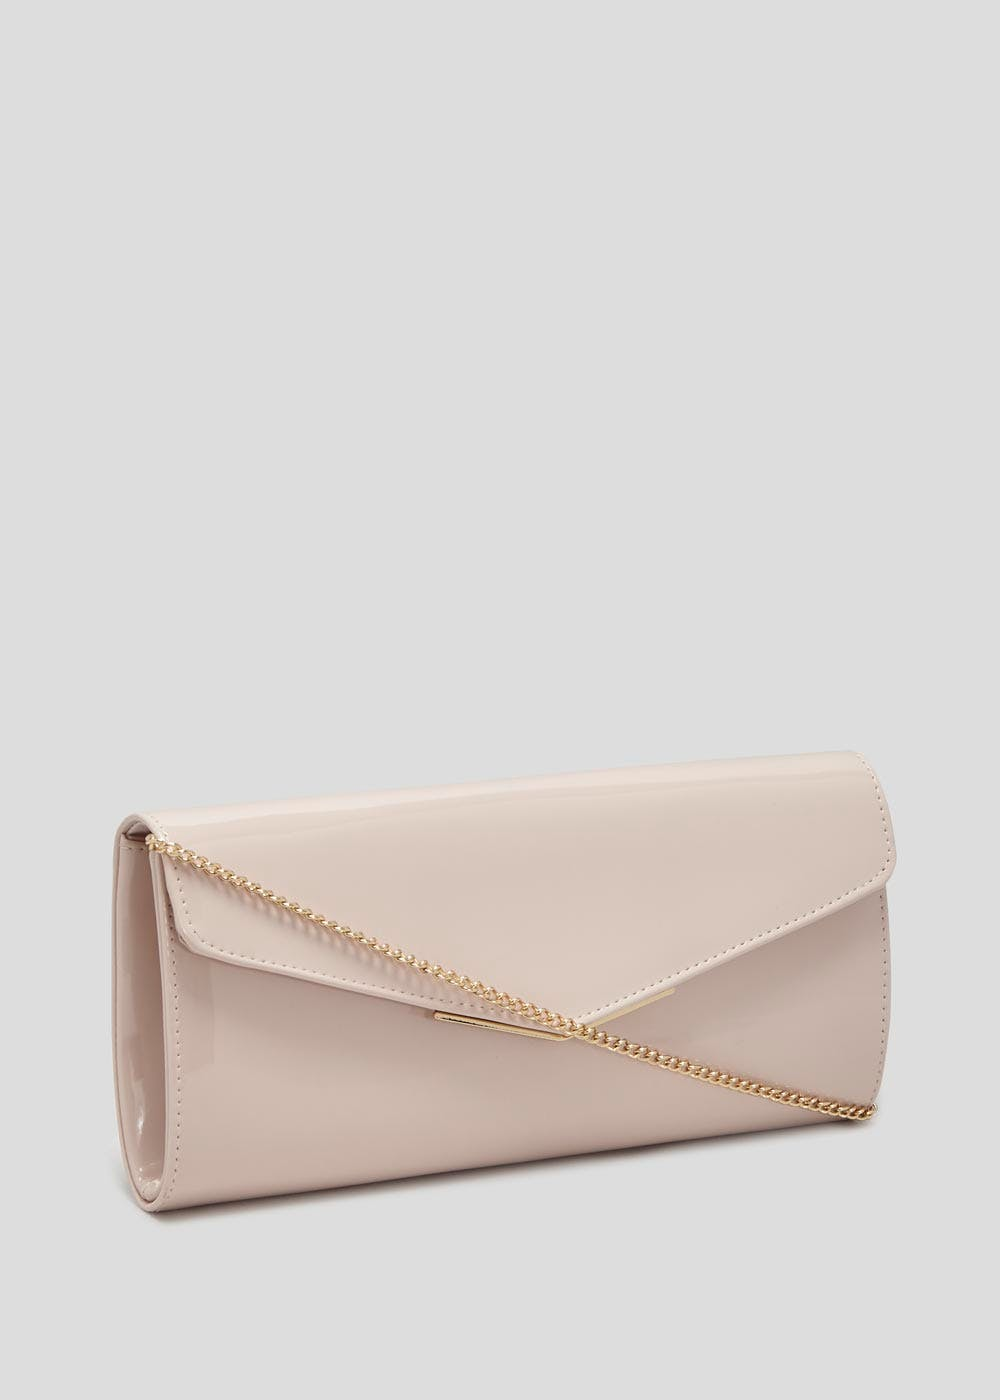 choose clearance full range of specifications special selection of Patent Envelope Clutch Bag